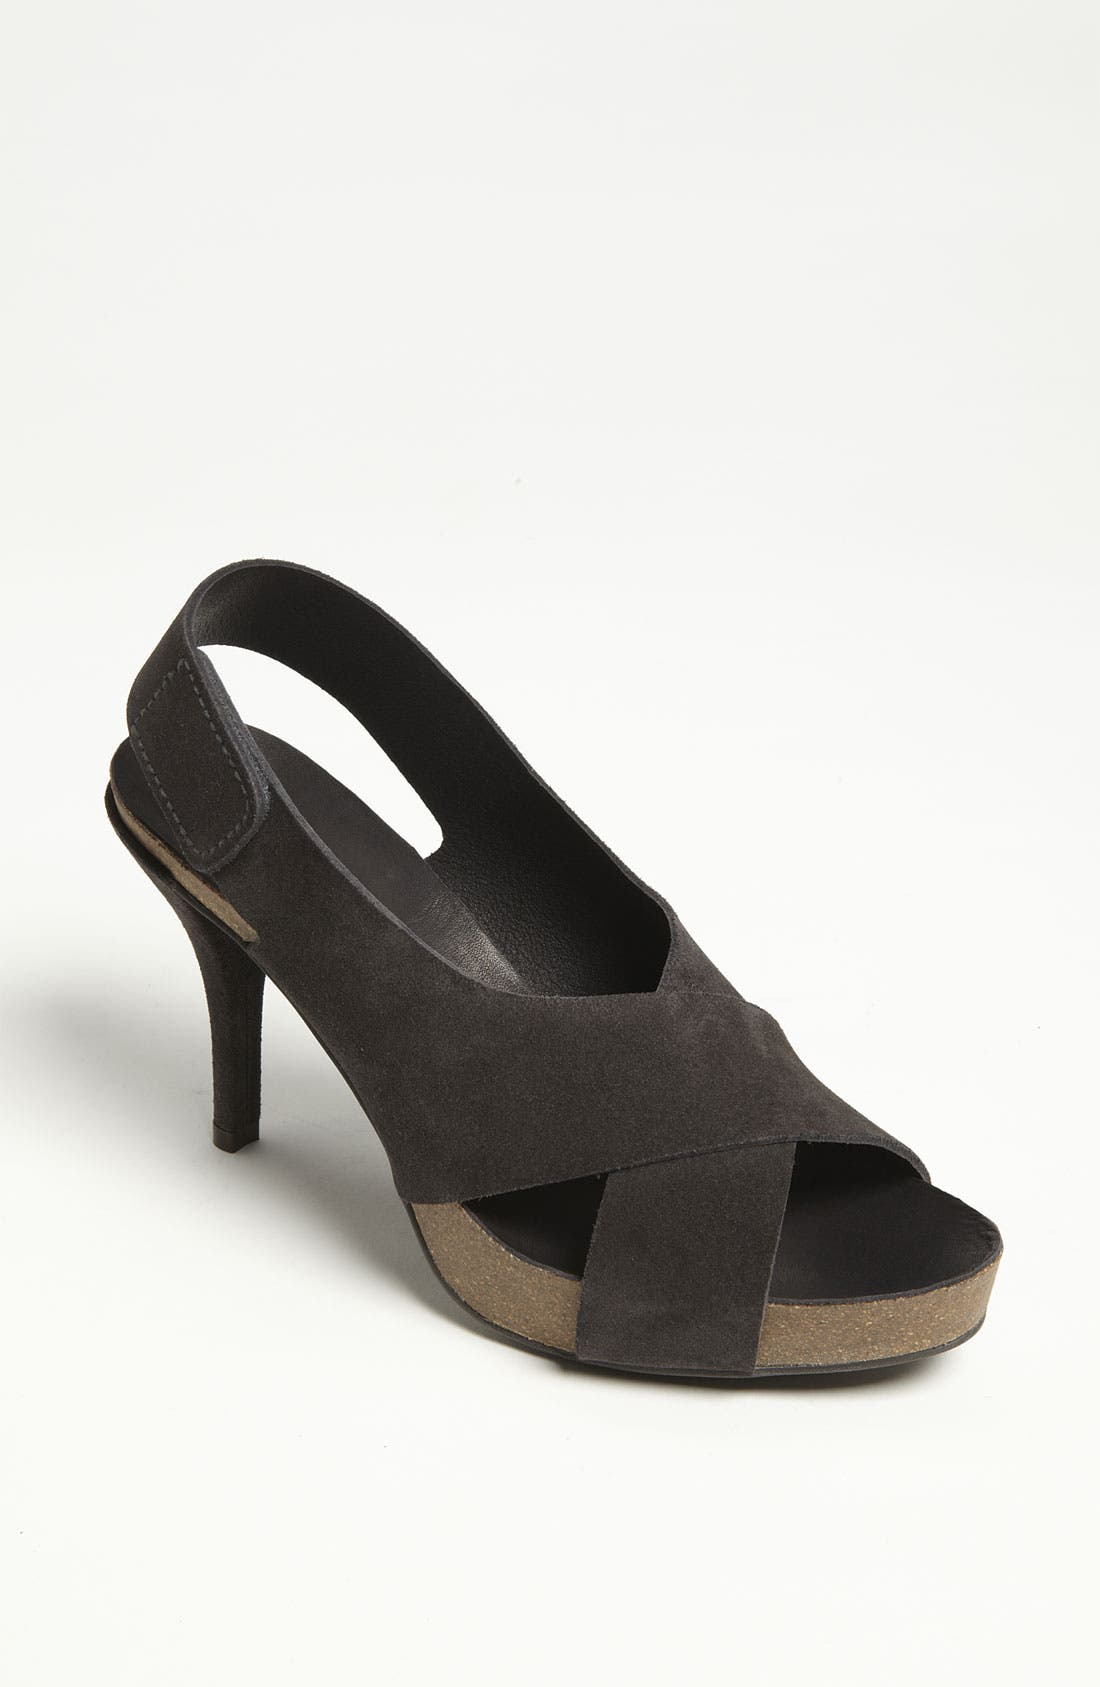 Main Image - Pedro Garcia 'Libby' Sandal (Nordstrom Exclusive)